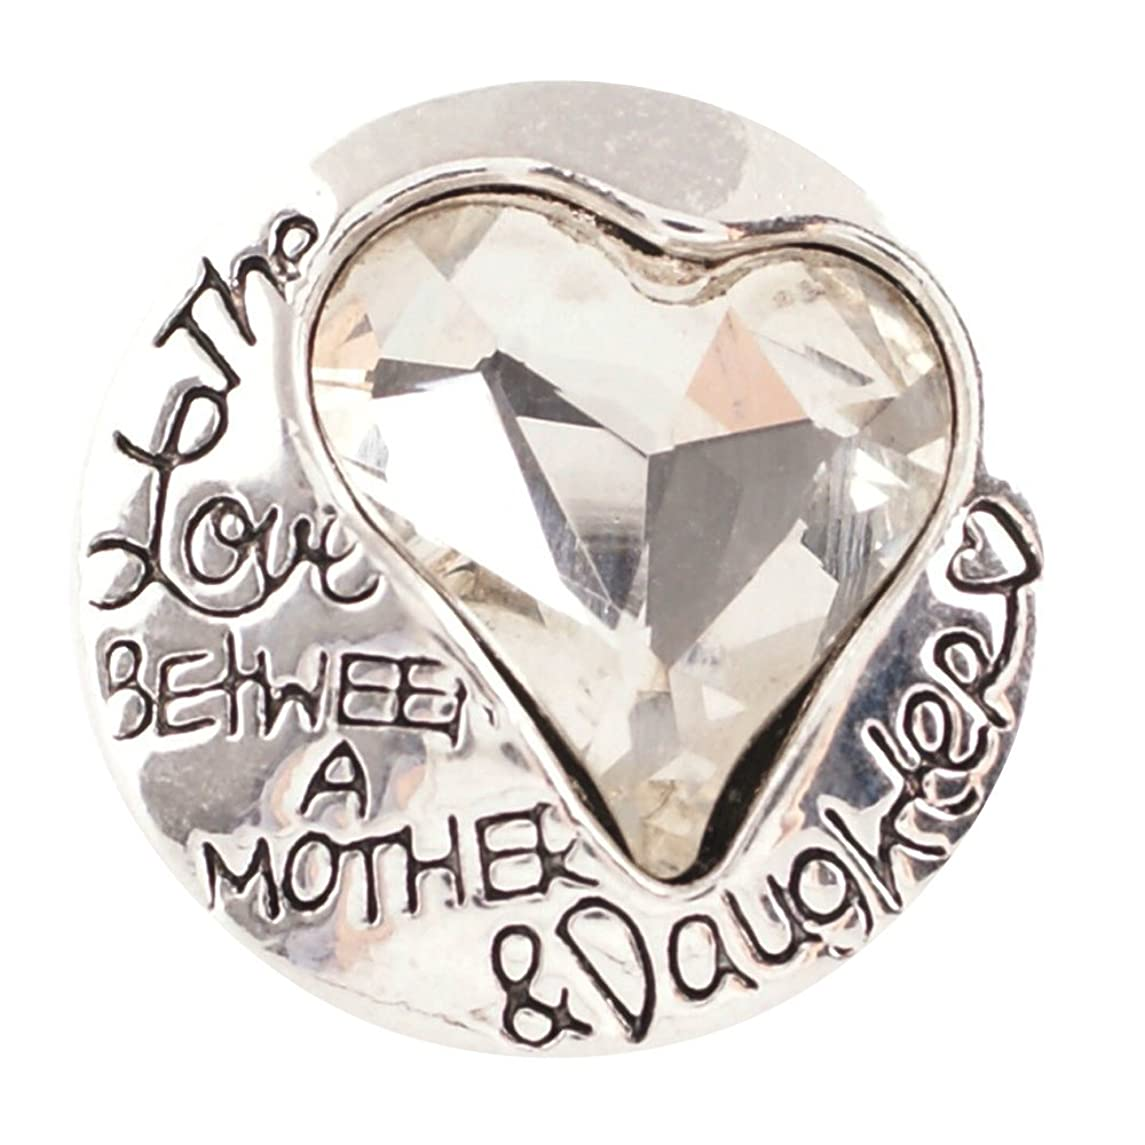 Dragonfly Spirit Designs Snap Charm The Love Between a Mother and Daughter Clear 3/4